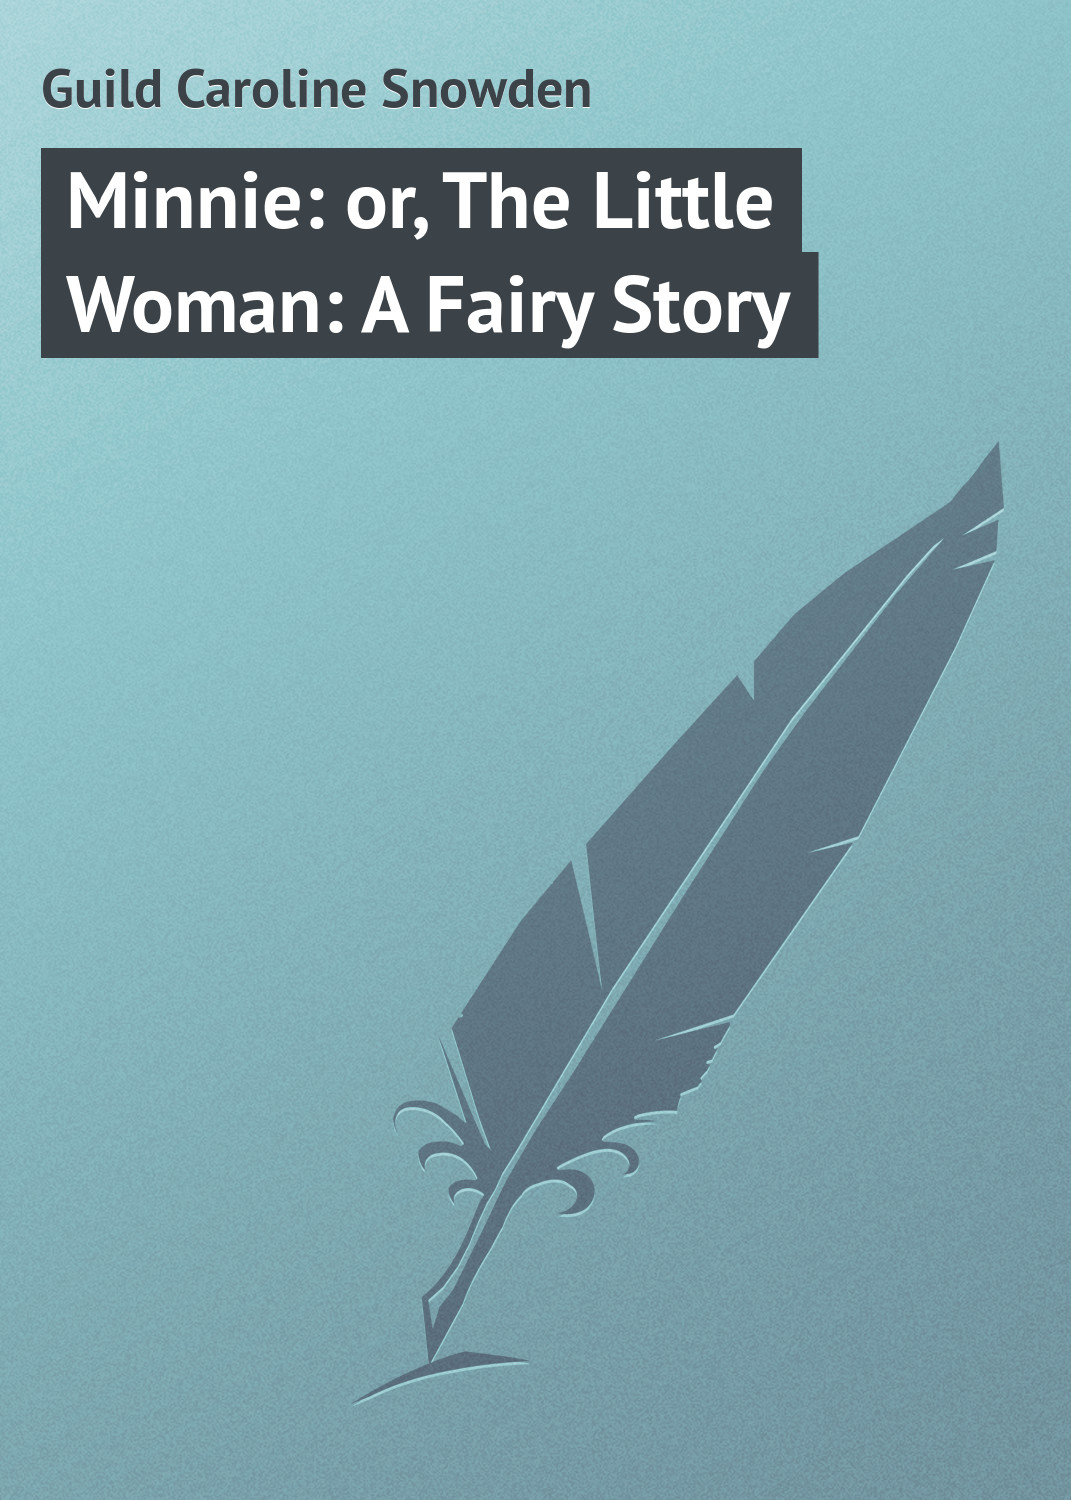 Guild Caroline Snowden Minnie: or, The Little Woman: A Fairy Story the guild volume 1